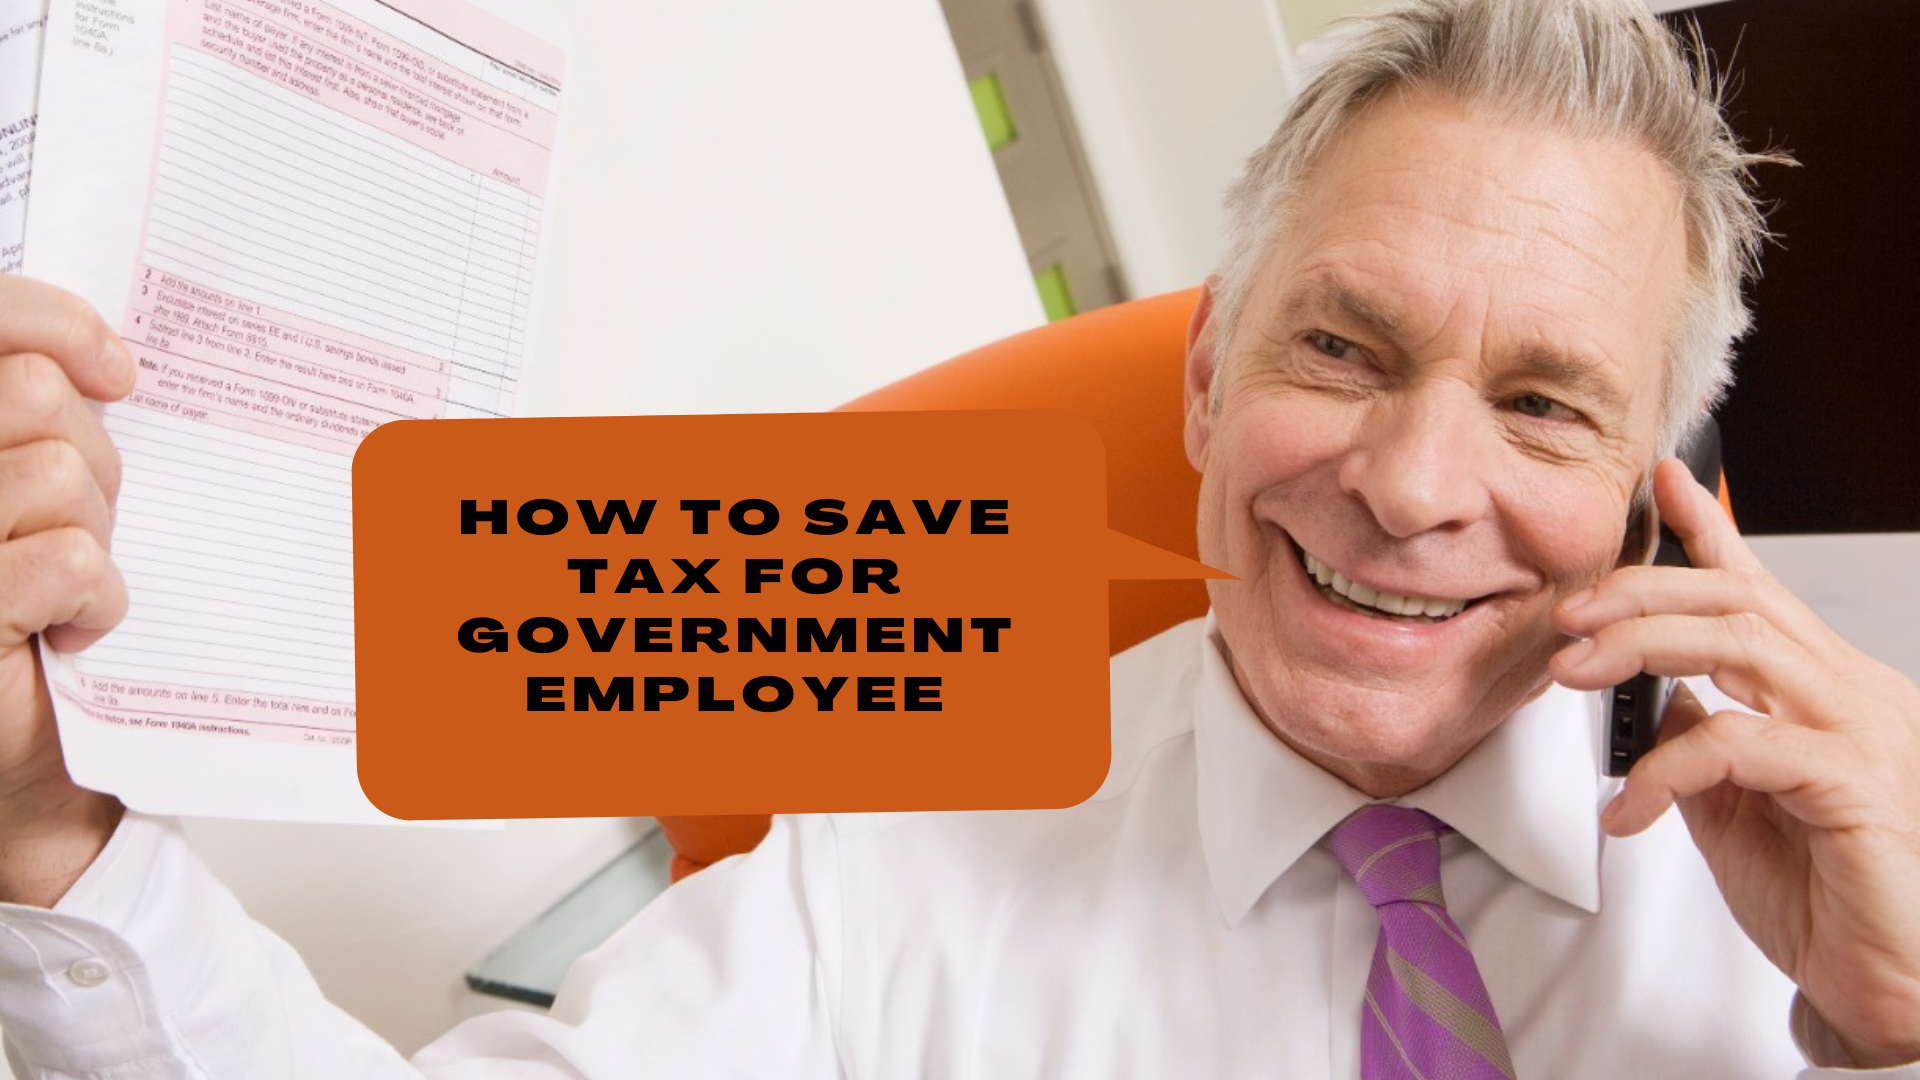 How to Save Tax for Government Employee